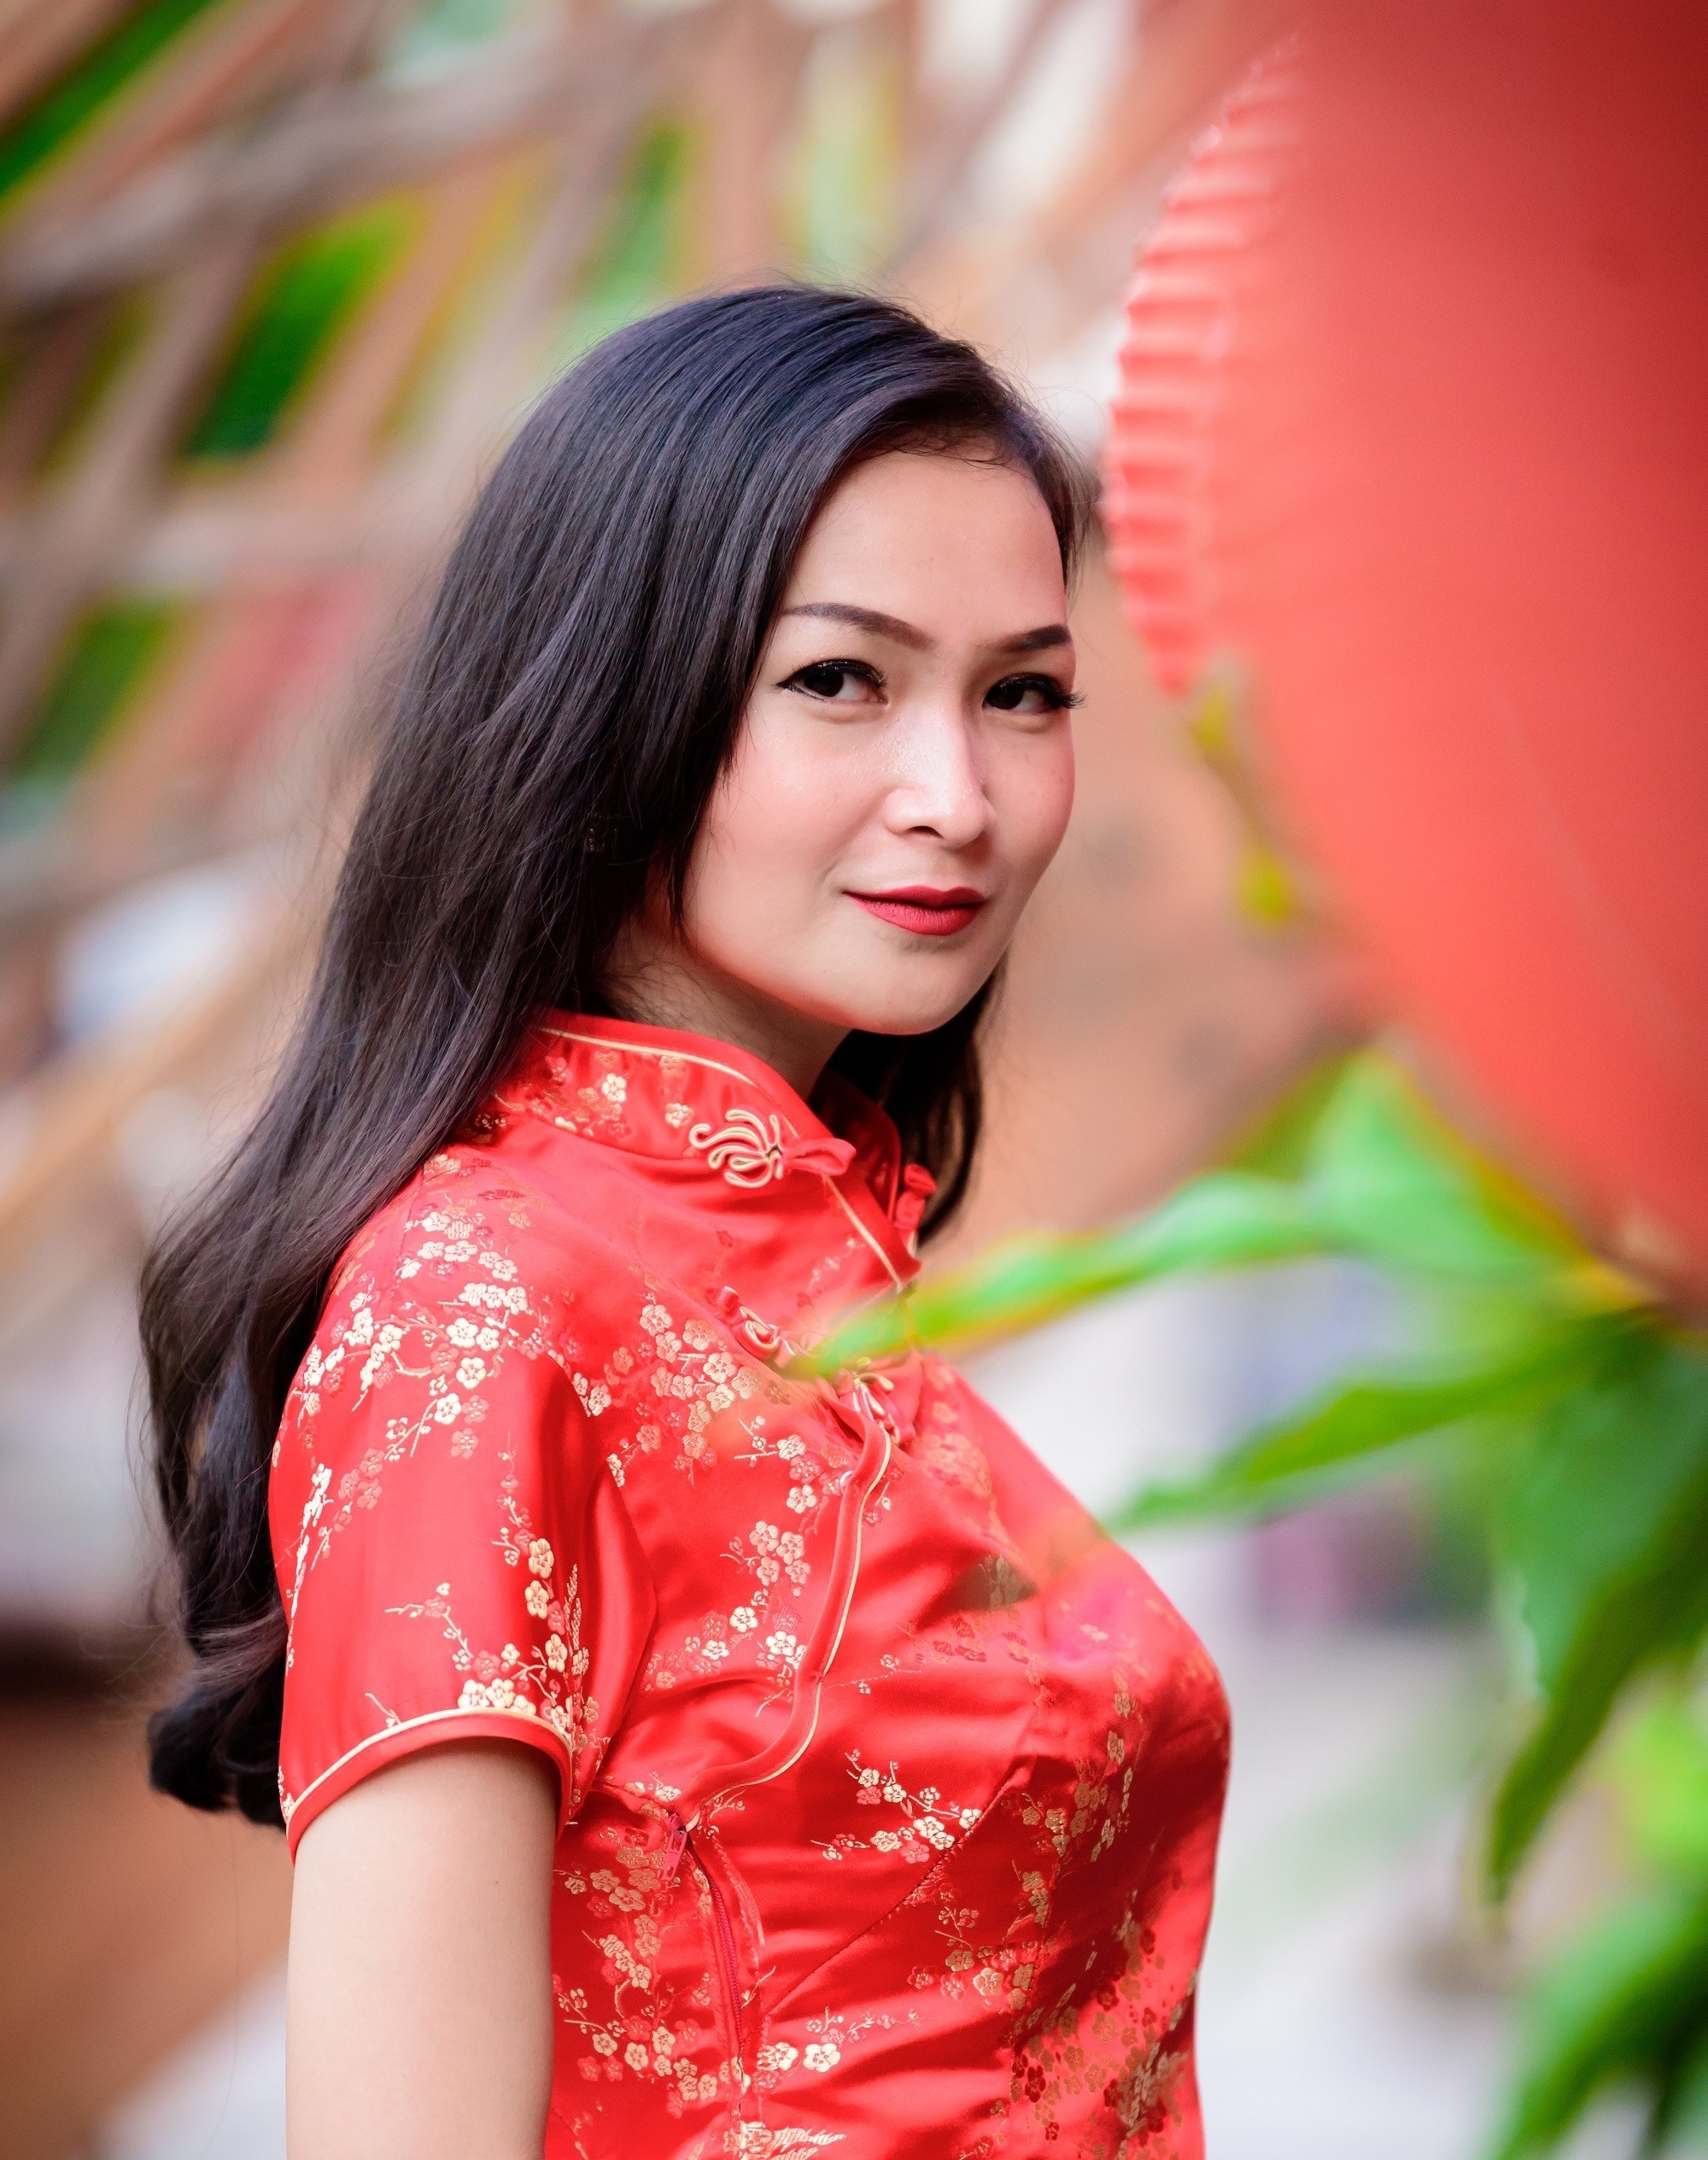 Chinese hairstyles: Closeup shot of a woman with long black hair wearing a red dress in Chinatown